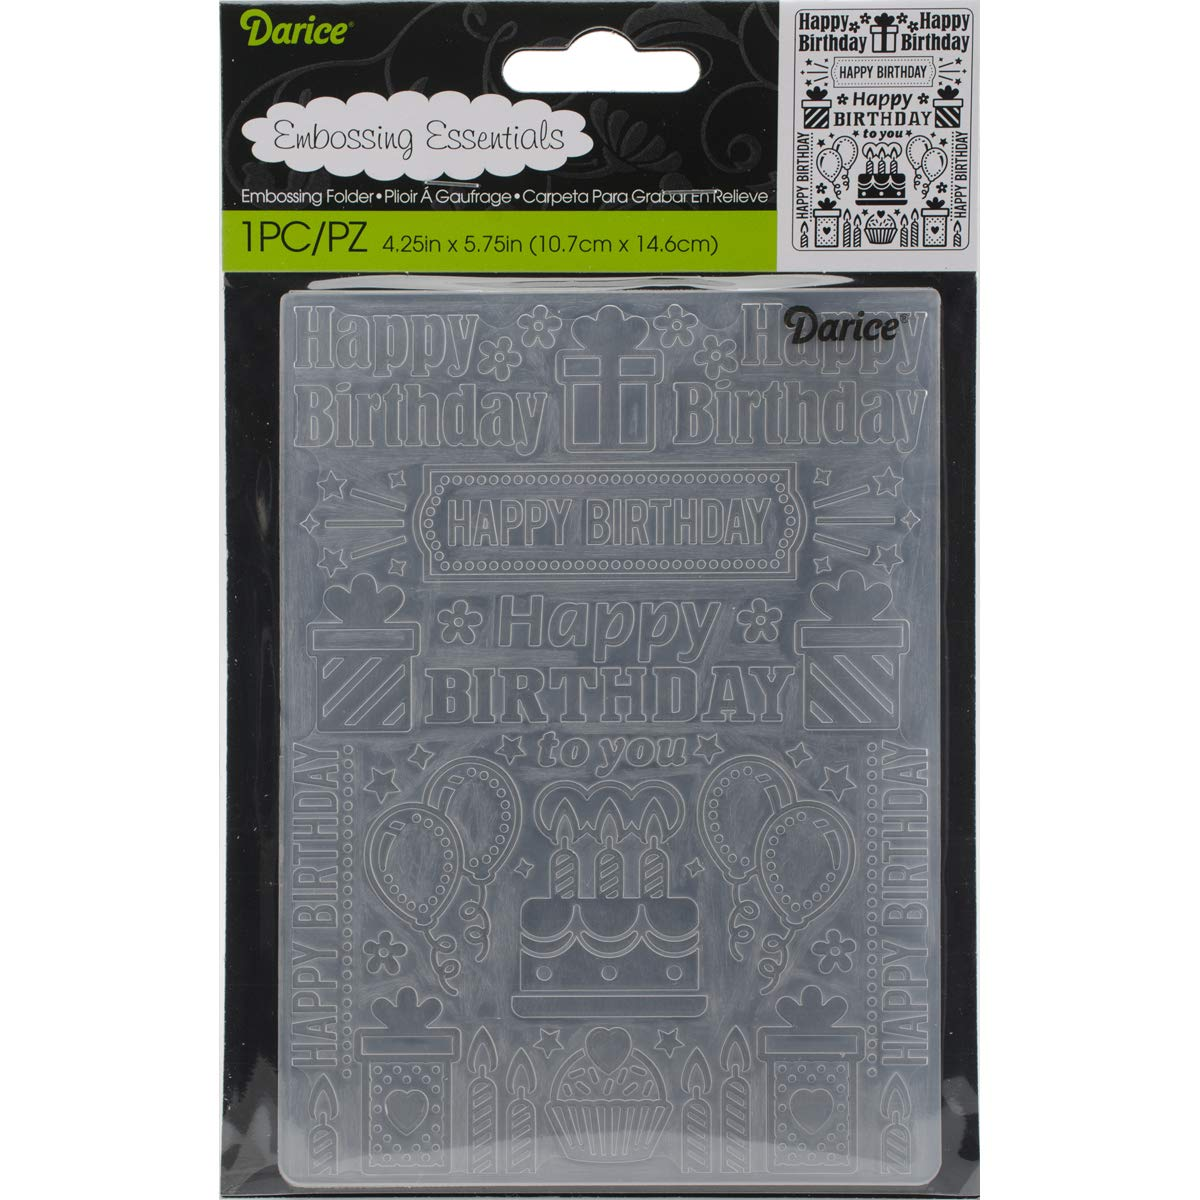 Embossing Folder Birthday Collage 4.25 X 5.75 Inches (8 Pack) by Generic (Image #1)